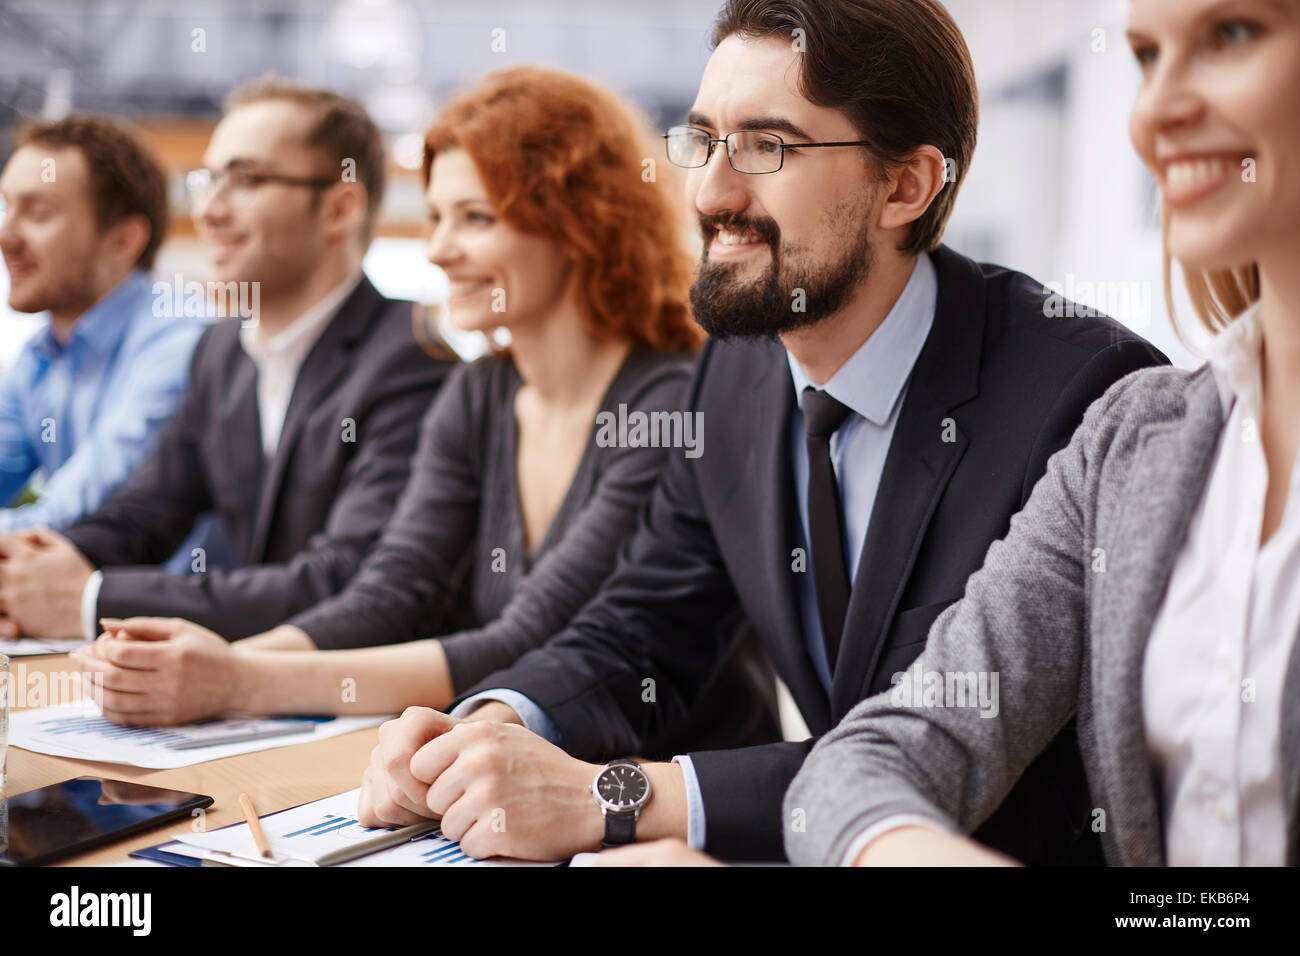 Young businessman listening to speaker among co-workers at conference - Stock Image